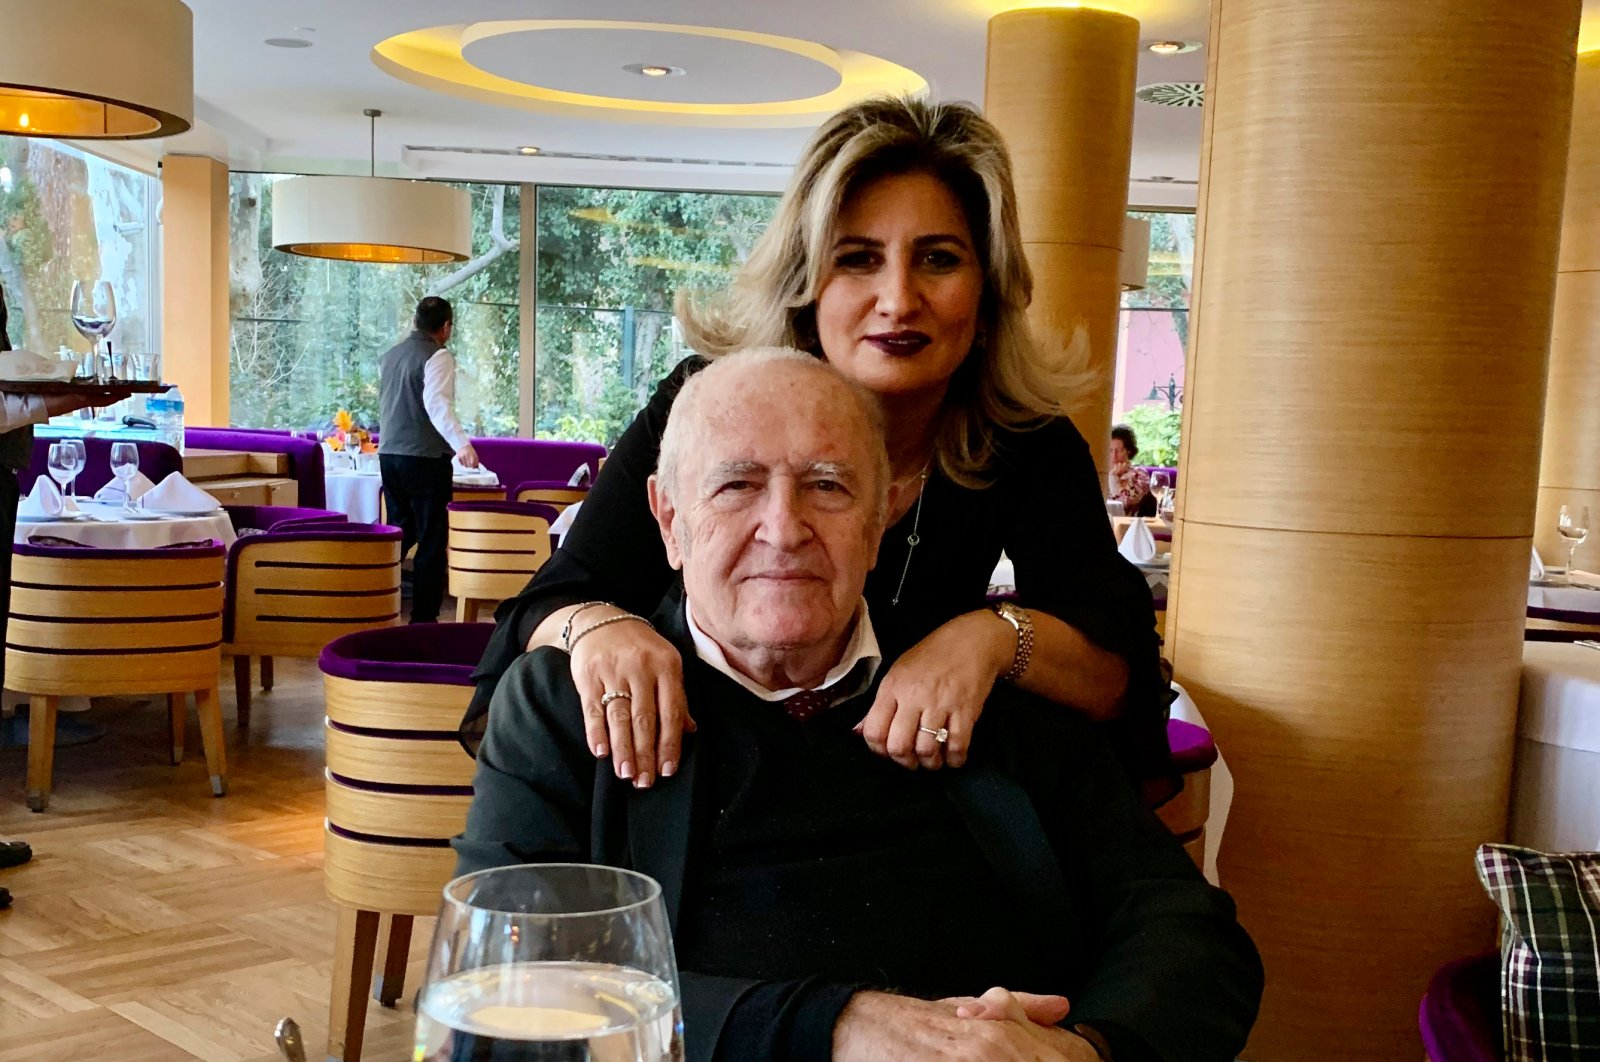 Dr. Murat Dilmener is pictured with his daughter Fulya, in Istanbul, Turkey, Feb. 2, 2020, in this family photo made available by Dr. Caner Dilmener. (AP Photo)